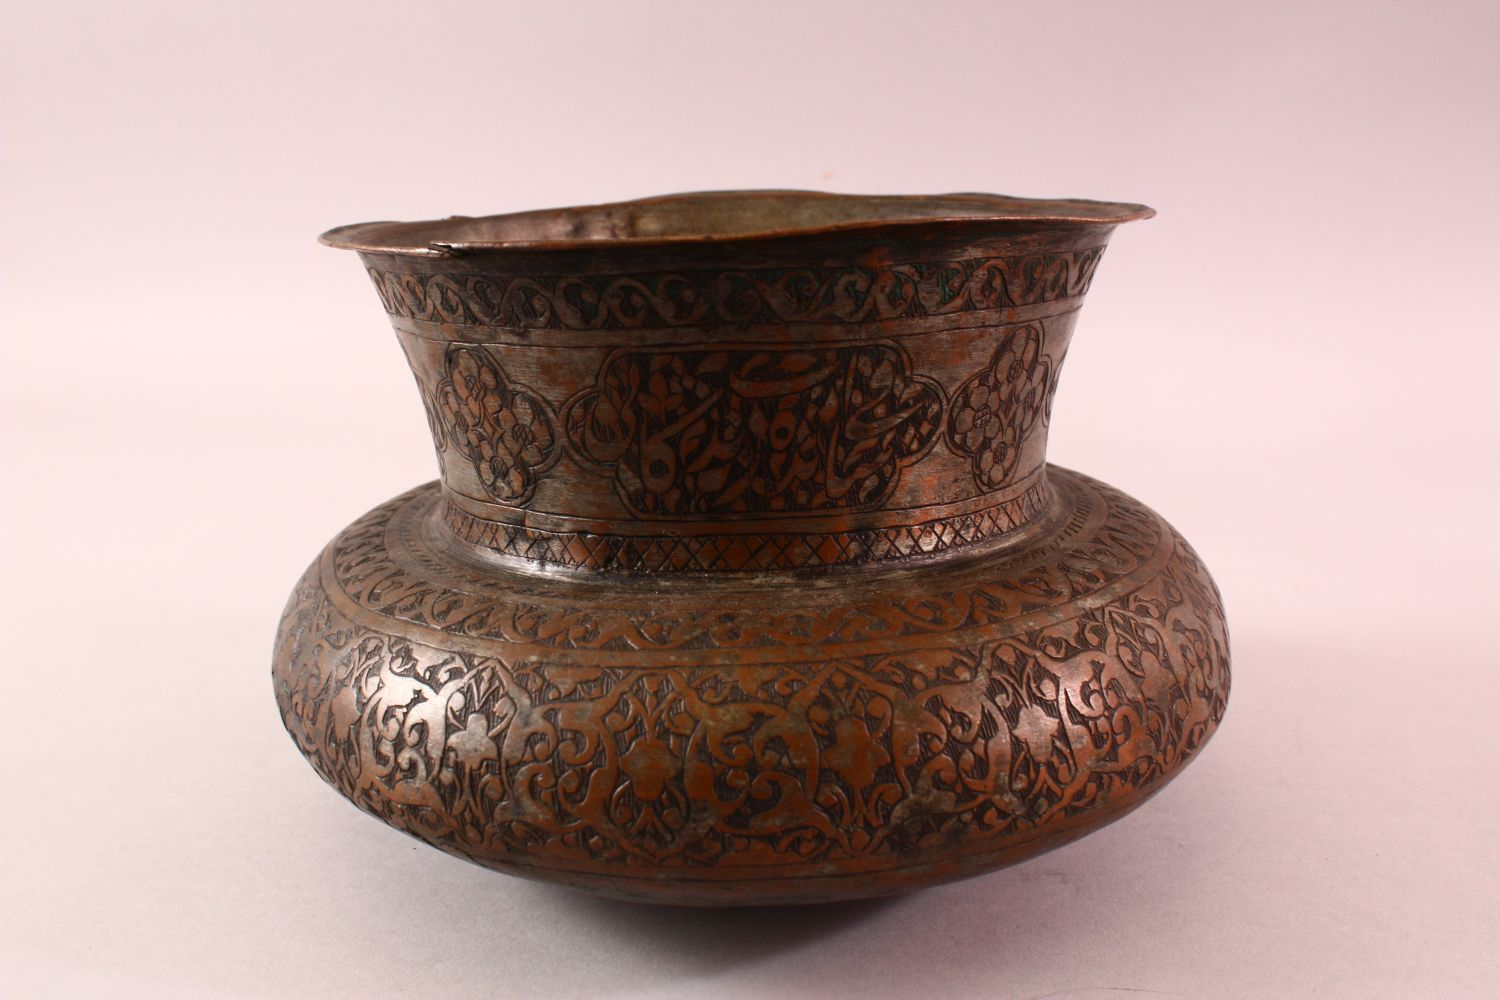 A 17TH CENTURY PERSIAN CALLIGRAPHIC BOWL -SIGNED - the body with carved floral motif decoration, the - Image 4 of 7